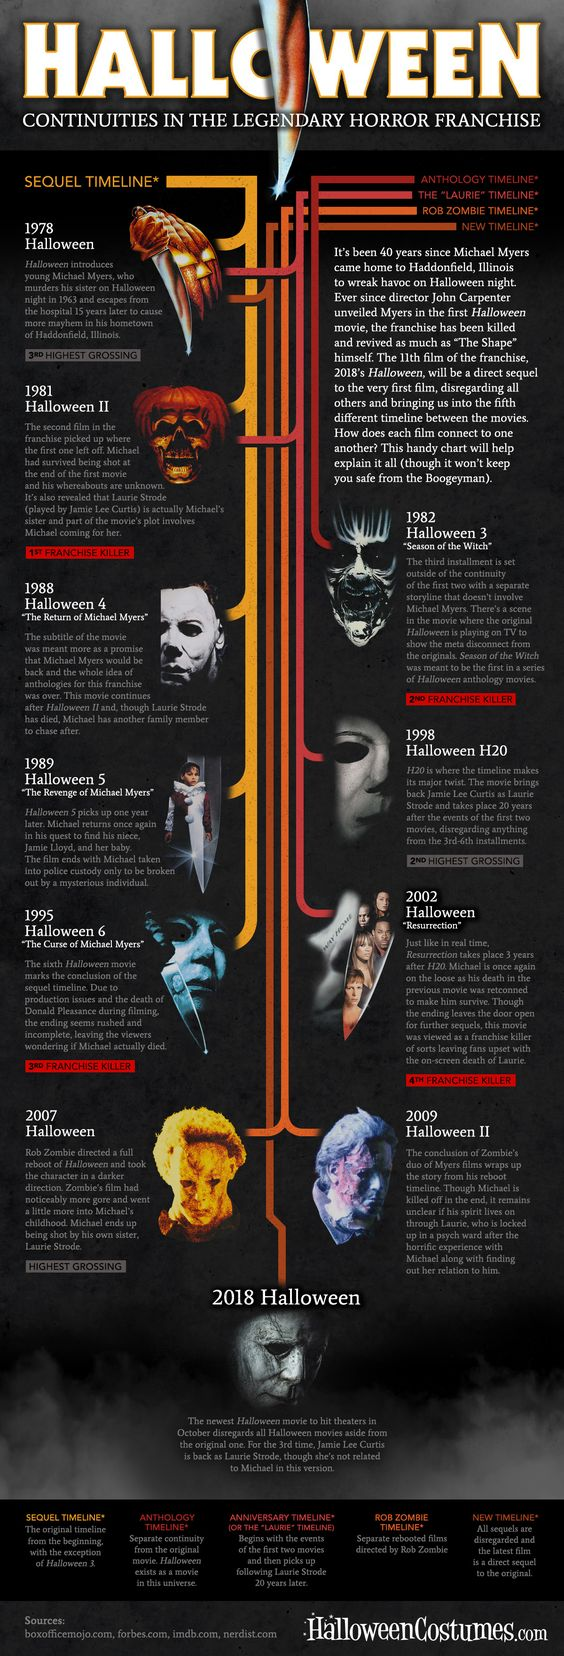 Halloween: The Timelines of Micheal Myers [Infographic]